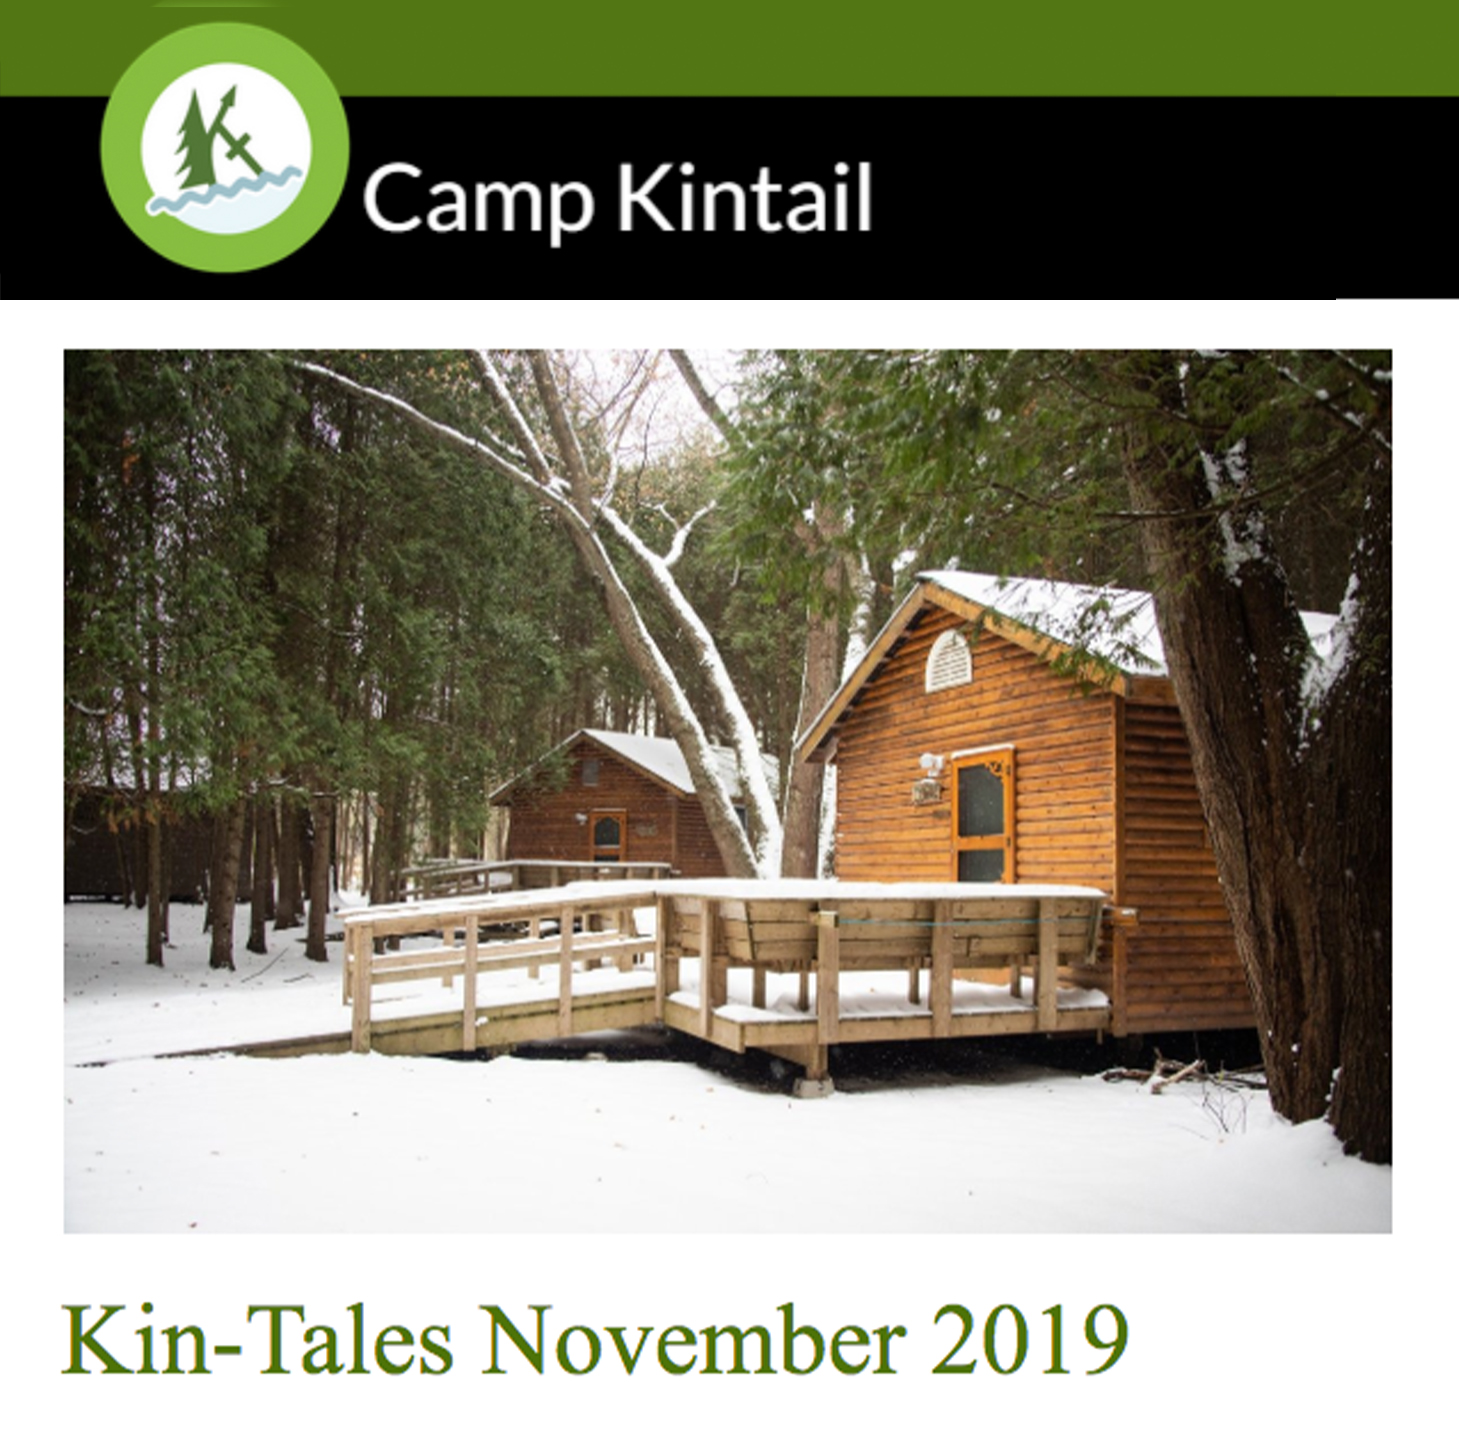 Title text: Kin-Tales November 2019. Image: Snow covered cabins.